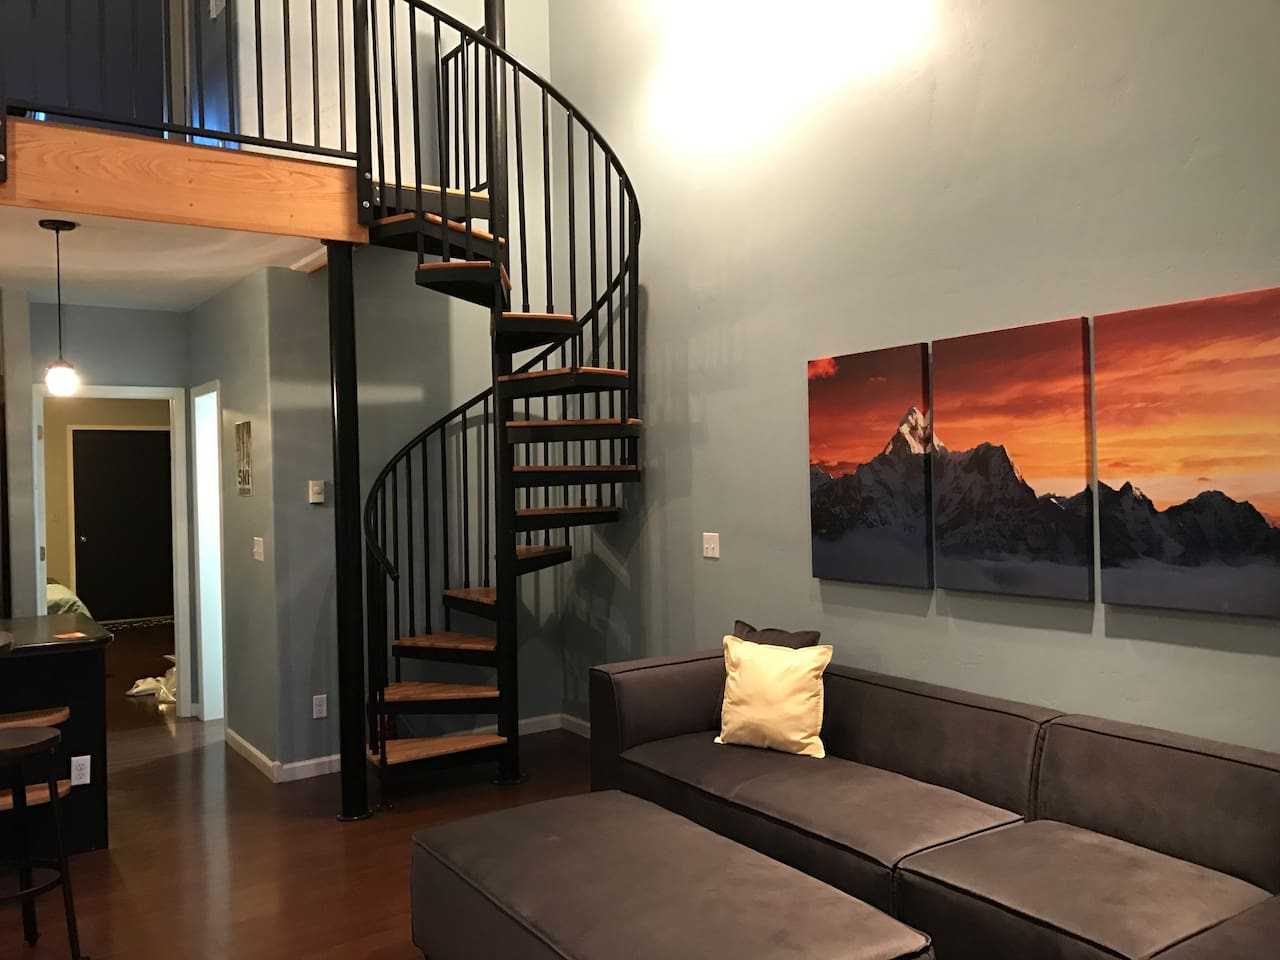 Welcome to the San Sophia Suite! We offer a well apportioned 2-bedroom, 2 bath, open spaced penthouse experience in the heart of the most beautiful town in North America.